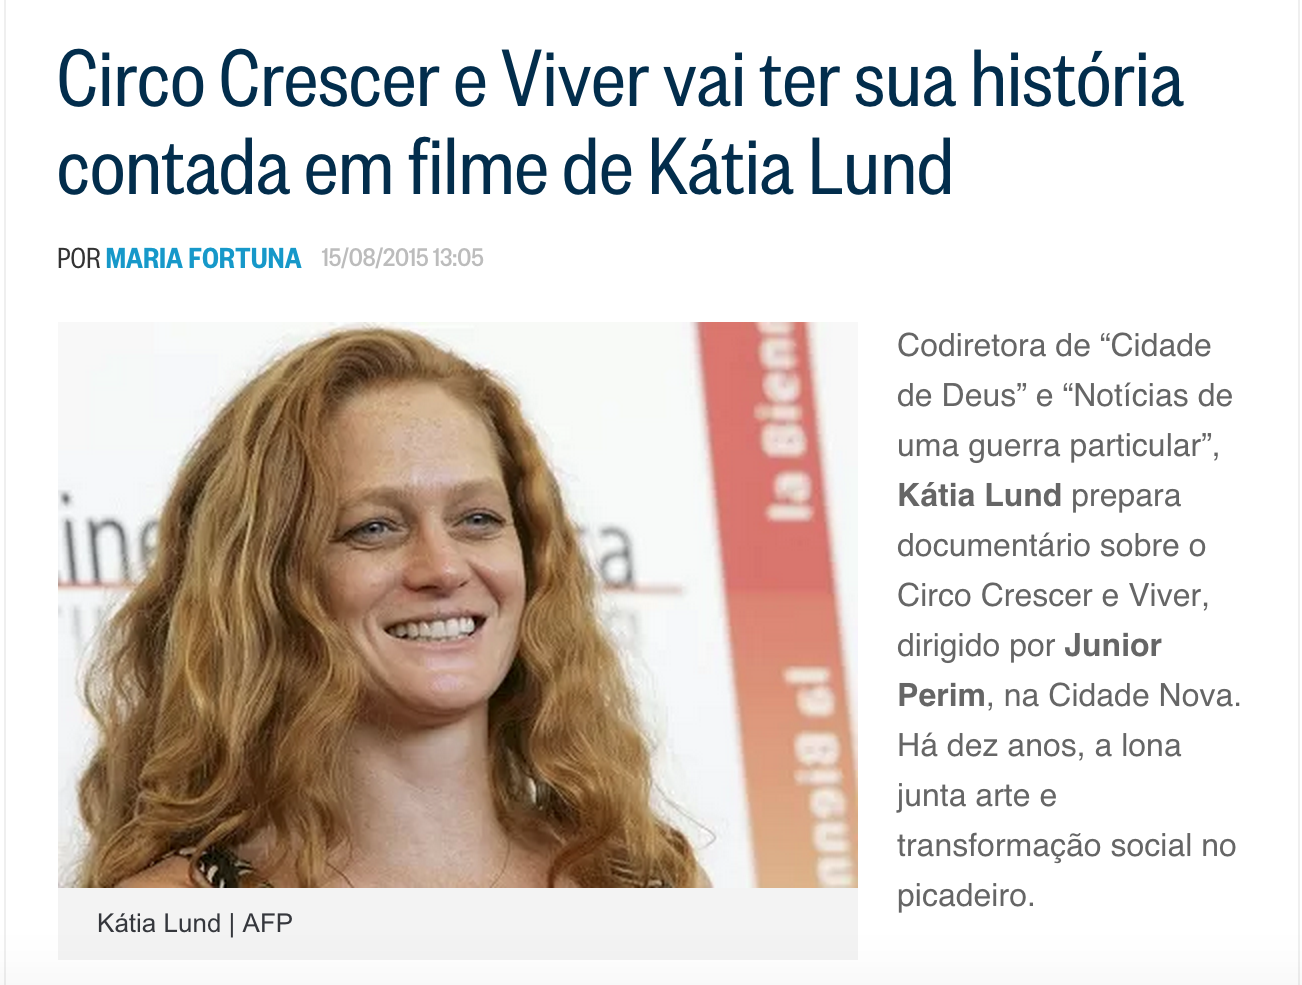 """Co-direcor of """"City of God"""" and """"News of a Particular War,""""  Katia Lund  is preparing a documentary on Crescer e Viver Circus. Crescer e Viver is a social organization directed by Junior Perim in Cidade Nova, Rio de Janeiro. For more than ten years, the social circus combines art and social transformation under the big top."""